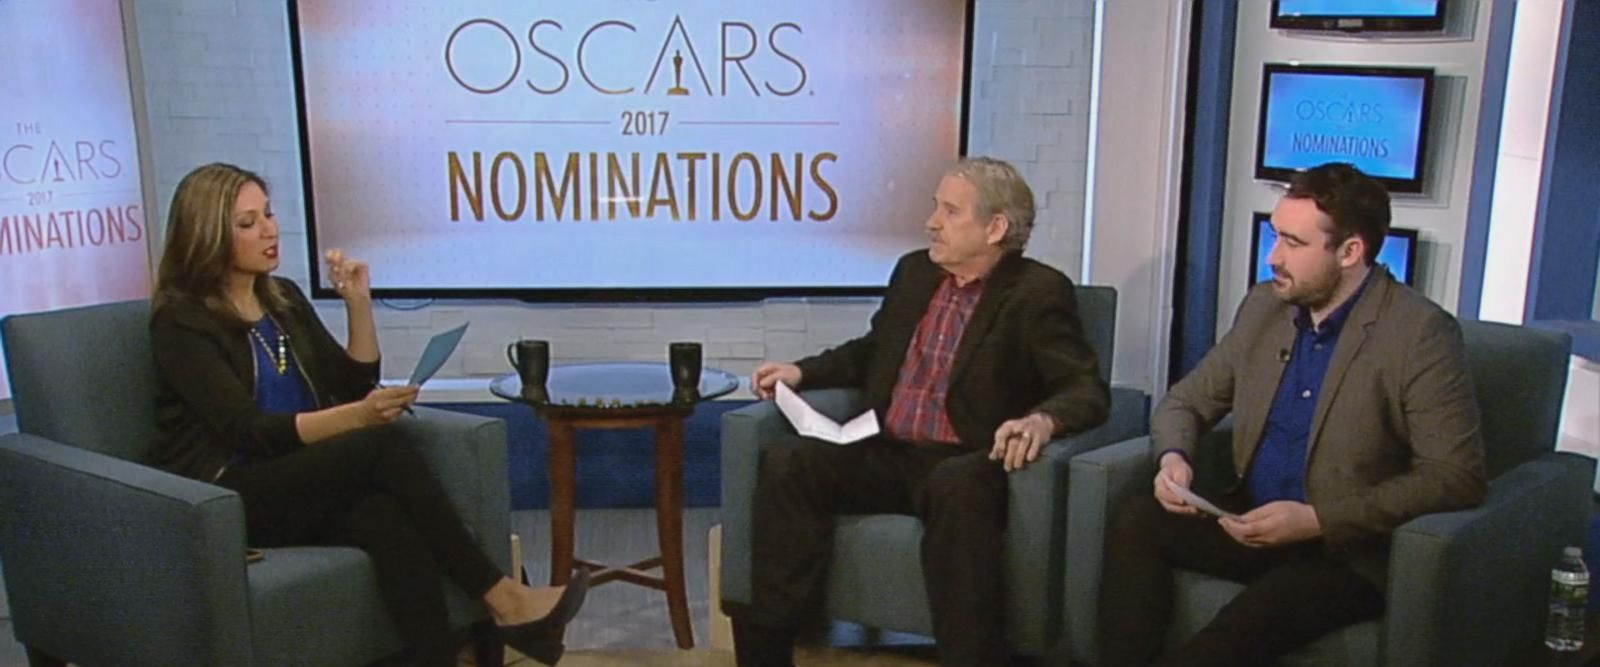 VIDEO: Oscars Nominations: What Happened to Amy Adams and Annette Benning?